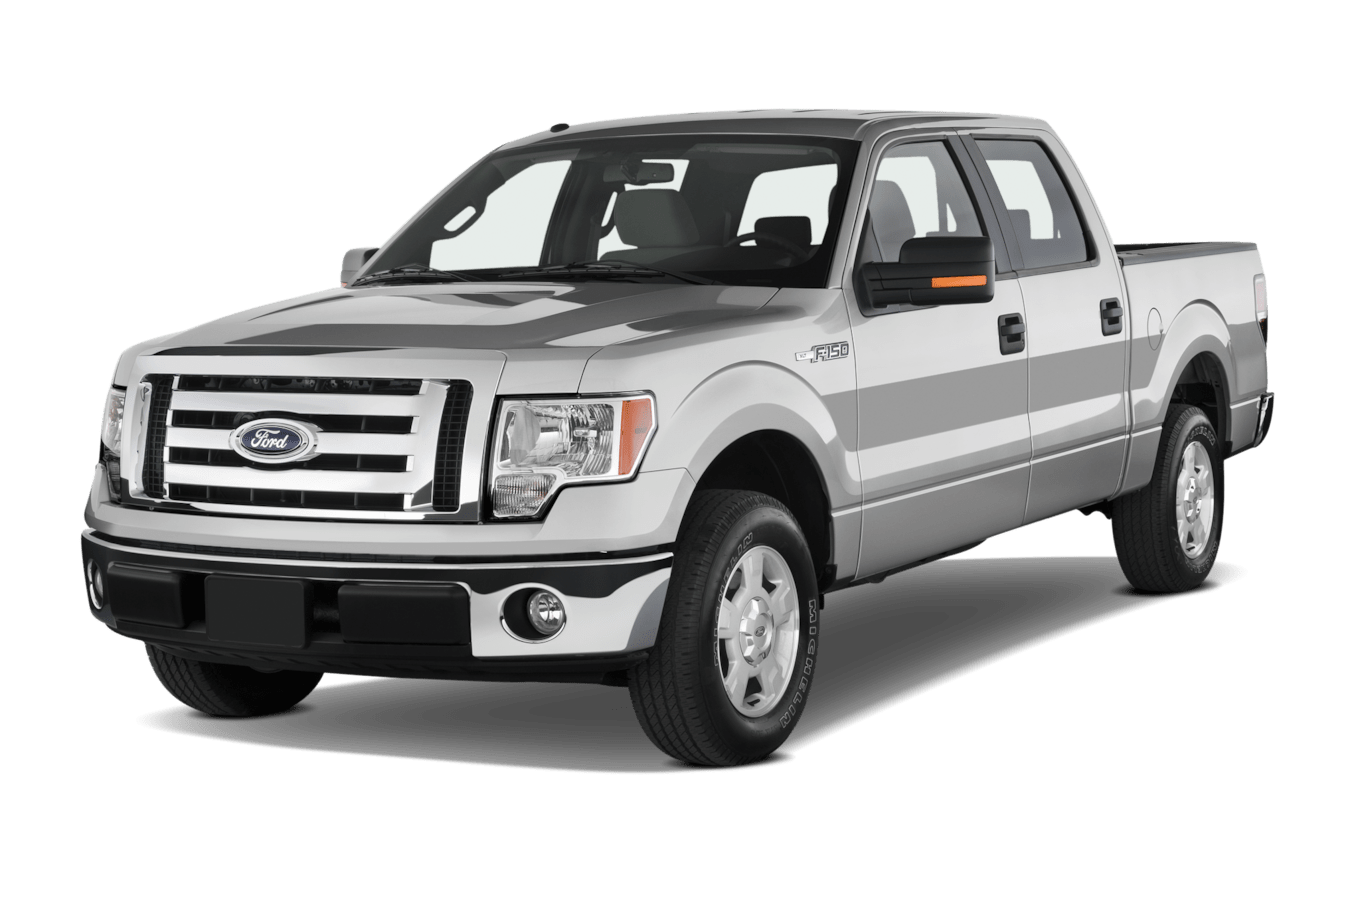 small resolution of 2010 ford f 150 reviews research f 150 prices specs ford f 150 4 6l engine diagram car tuning